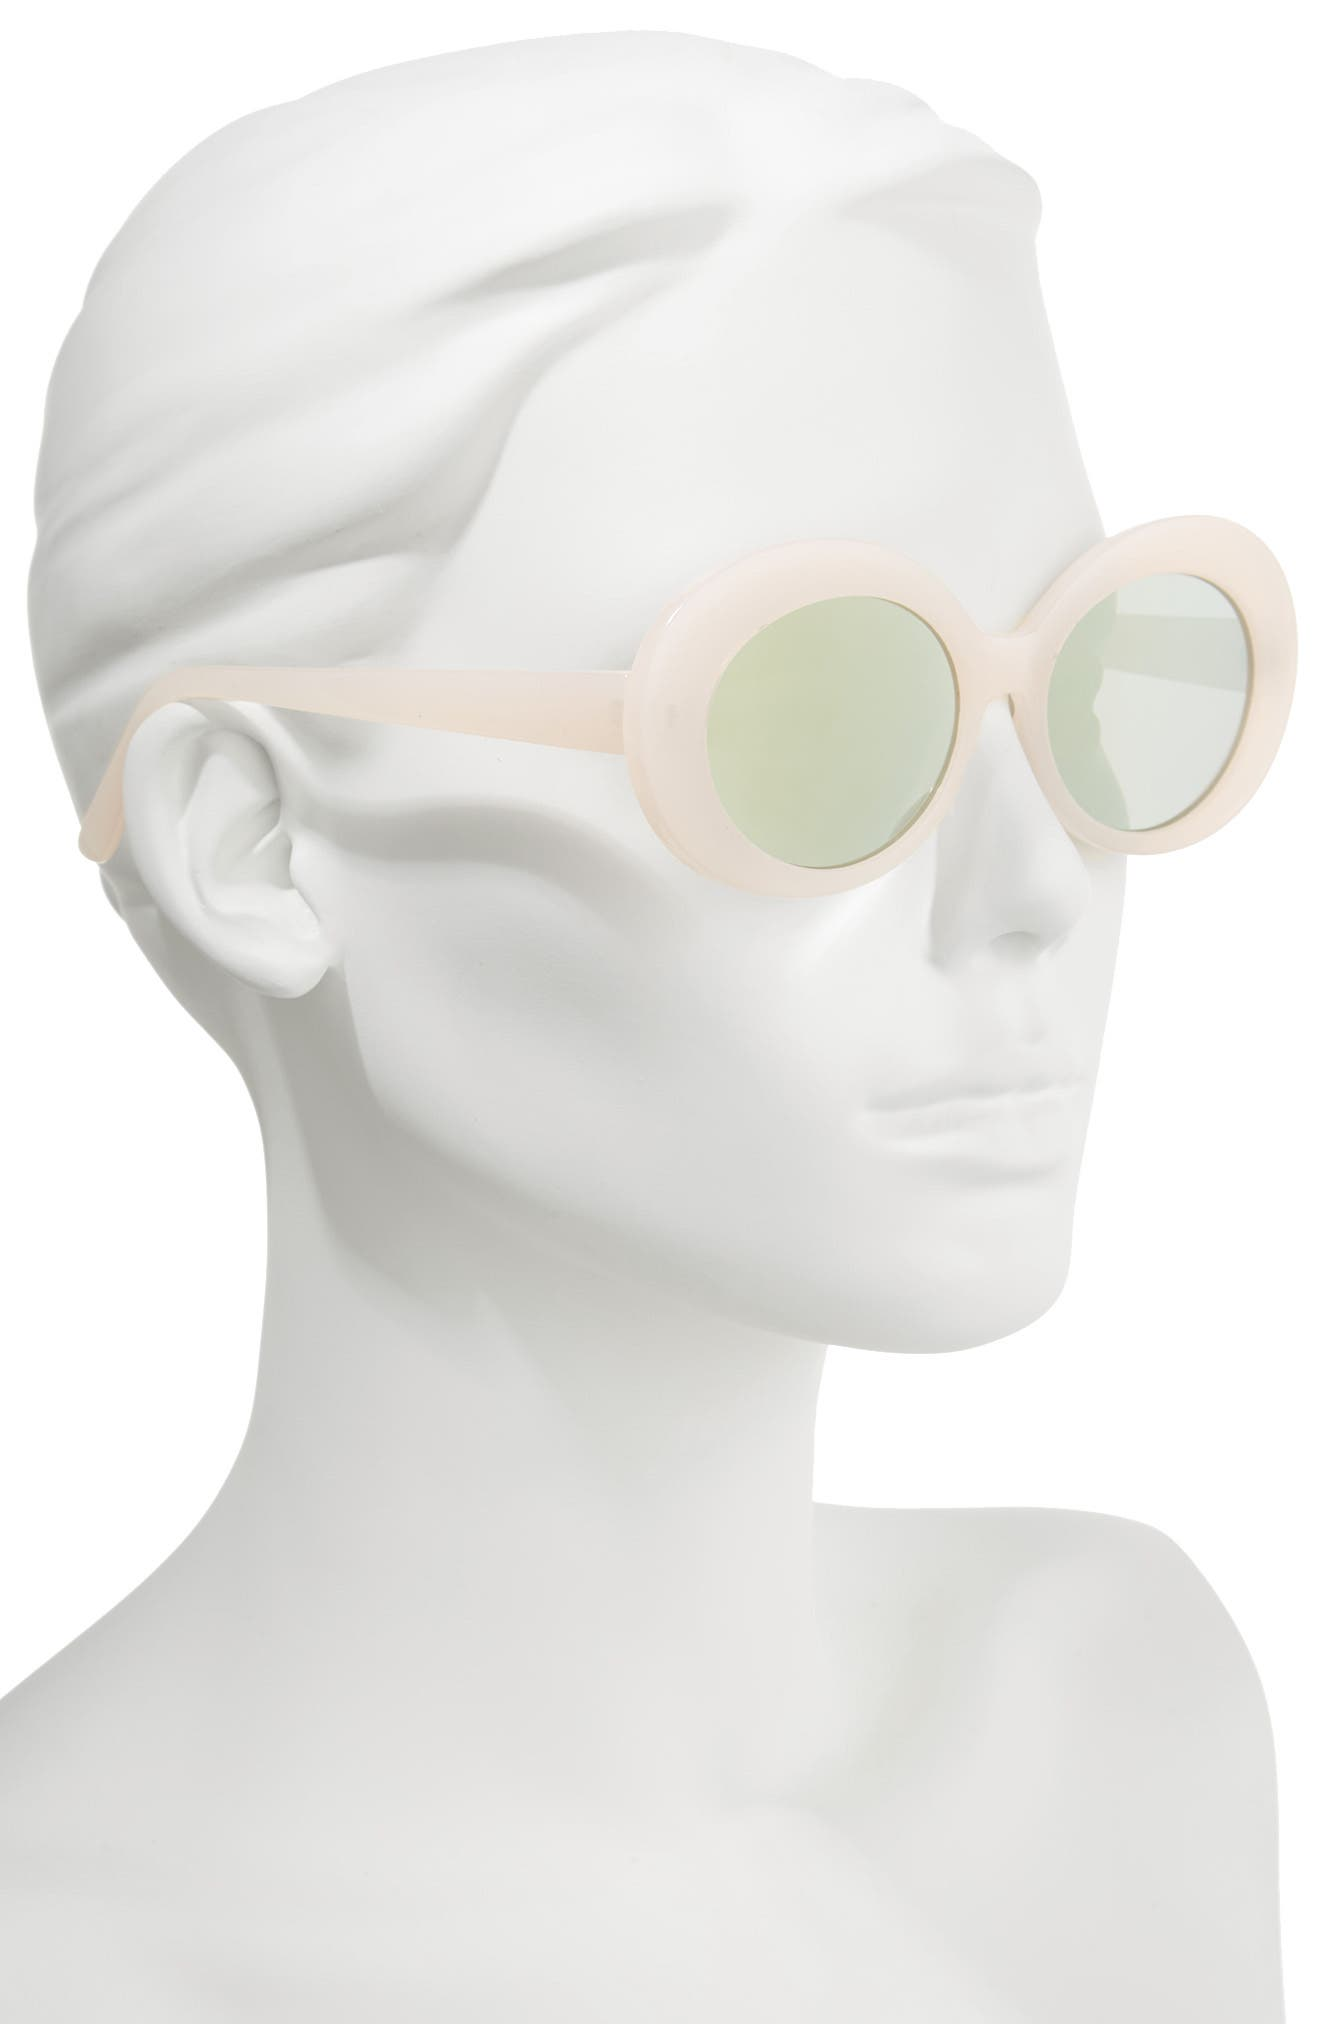 55mm Oval Sunglasses,                             Alternate thumbnail 2, color,                             Pink